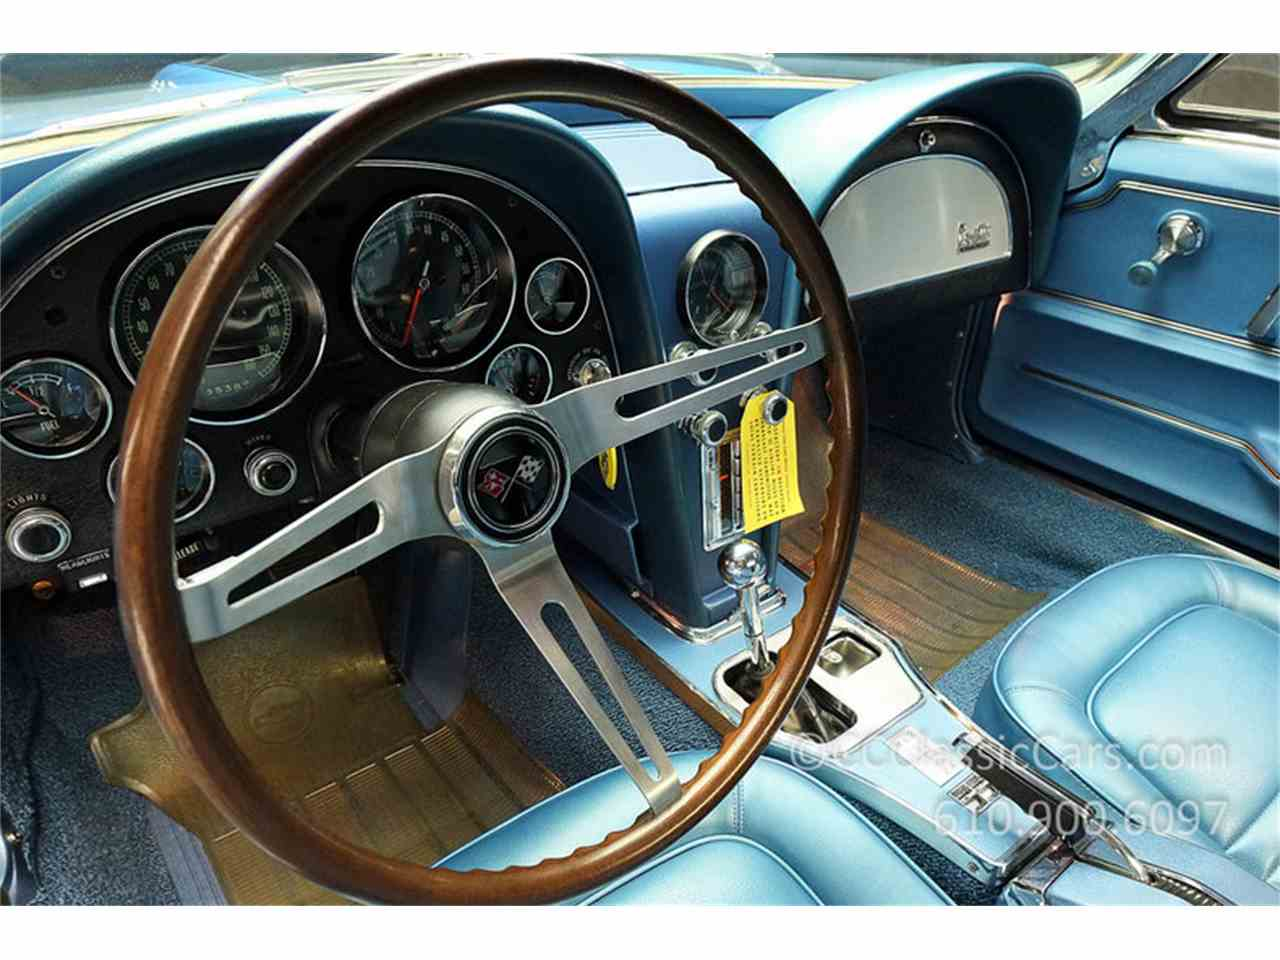 Large Picture of Classic 1967 Chevrolet Corvette located in West Chester Pennsylvania Auction Vehicle - JV9S